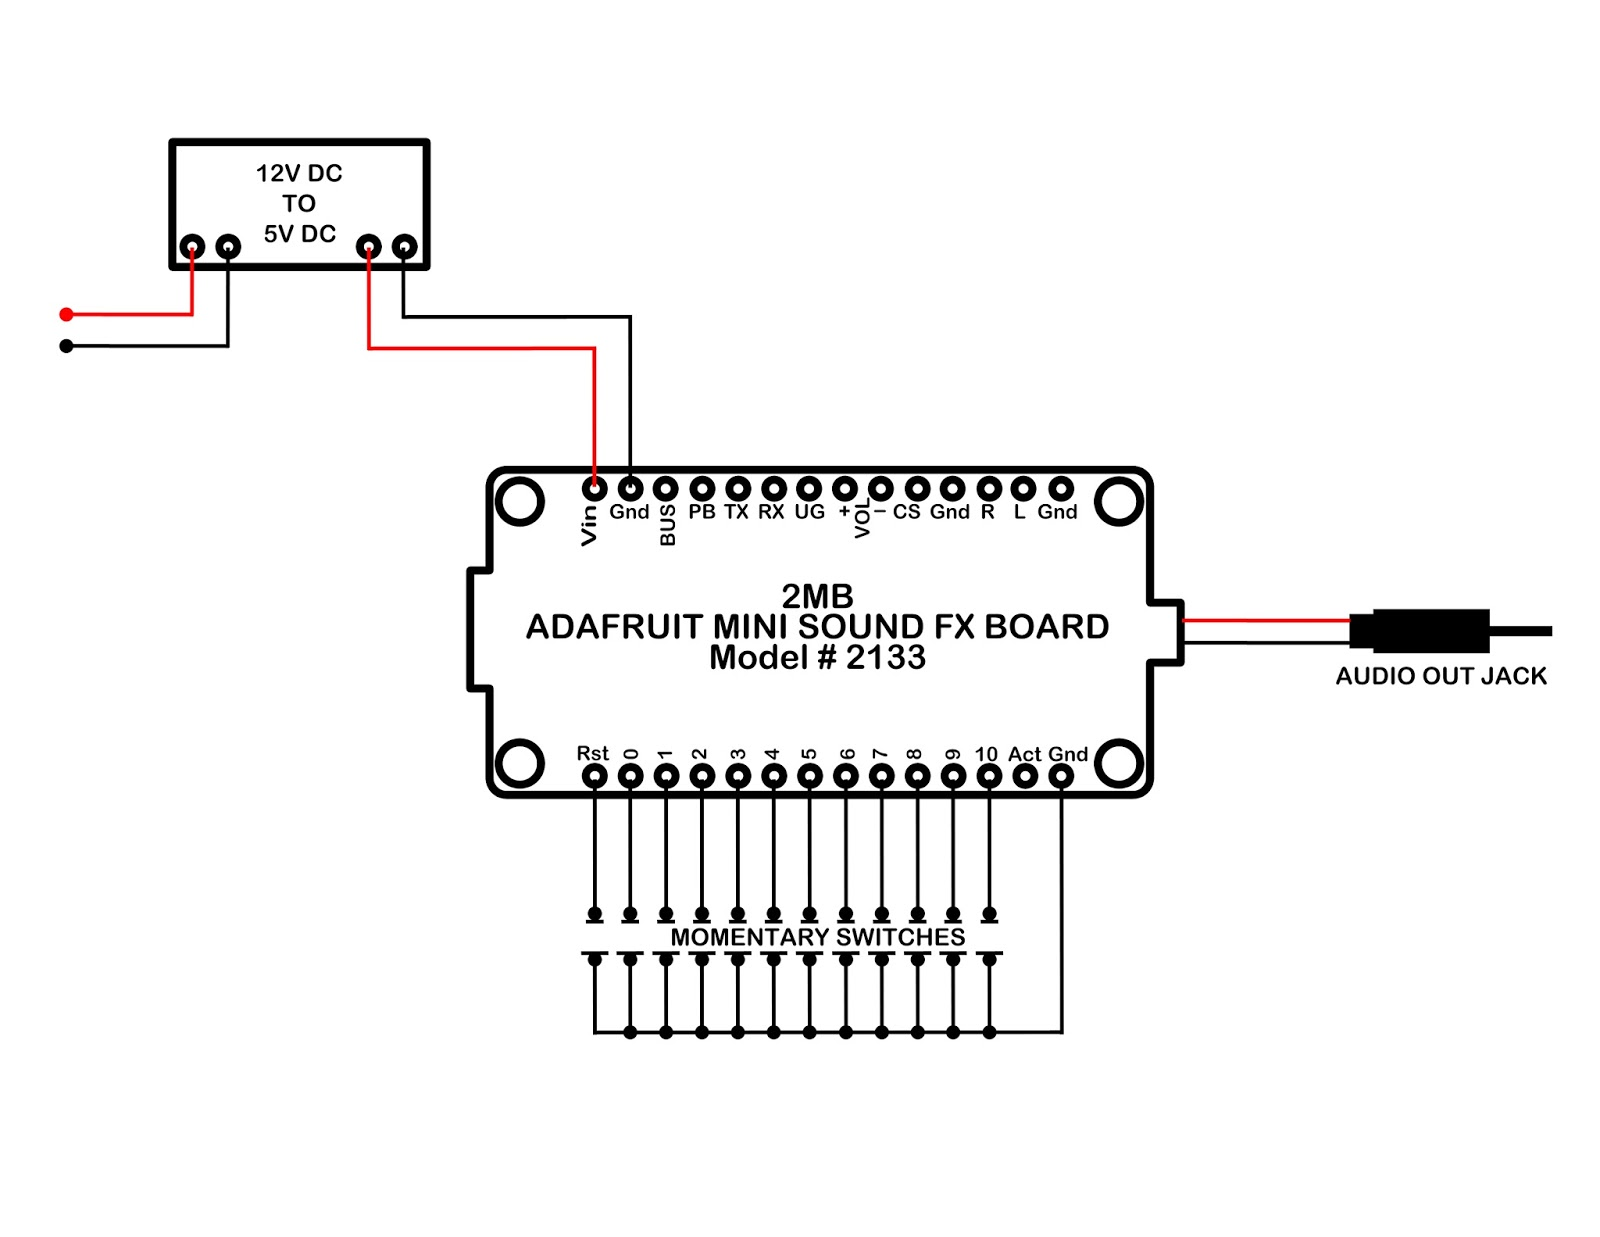 my knight rider 2000 project adafruit mini sound fx board wiring rh myknightrider2000 blogspot com GMC Factory Stereo Wiring Diagrams Mitsubishi Car Radio Wiring Diagram